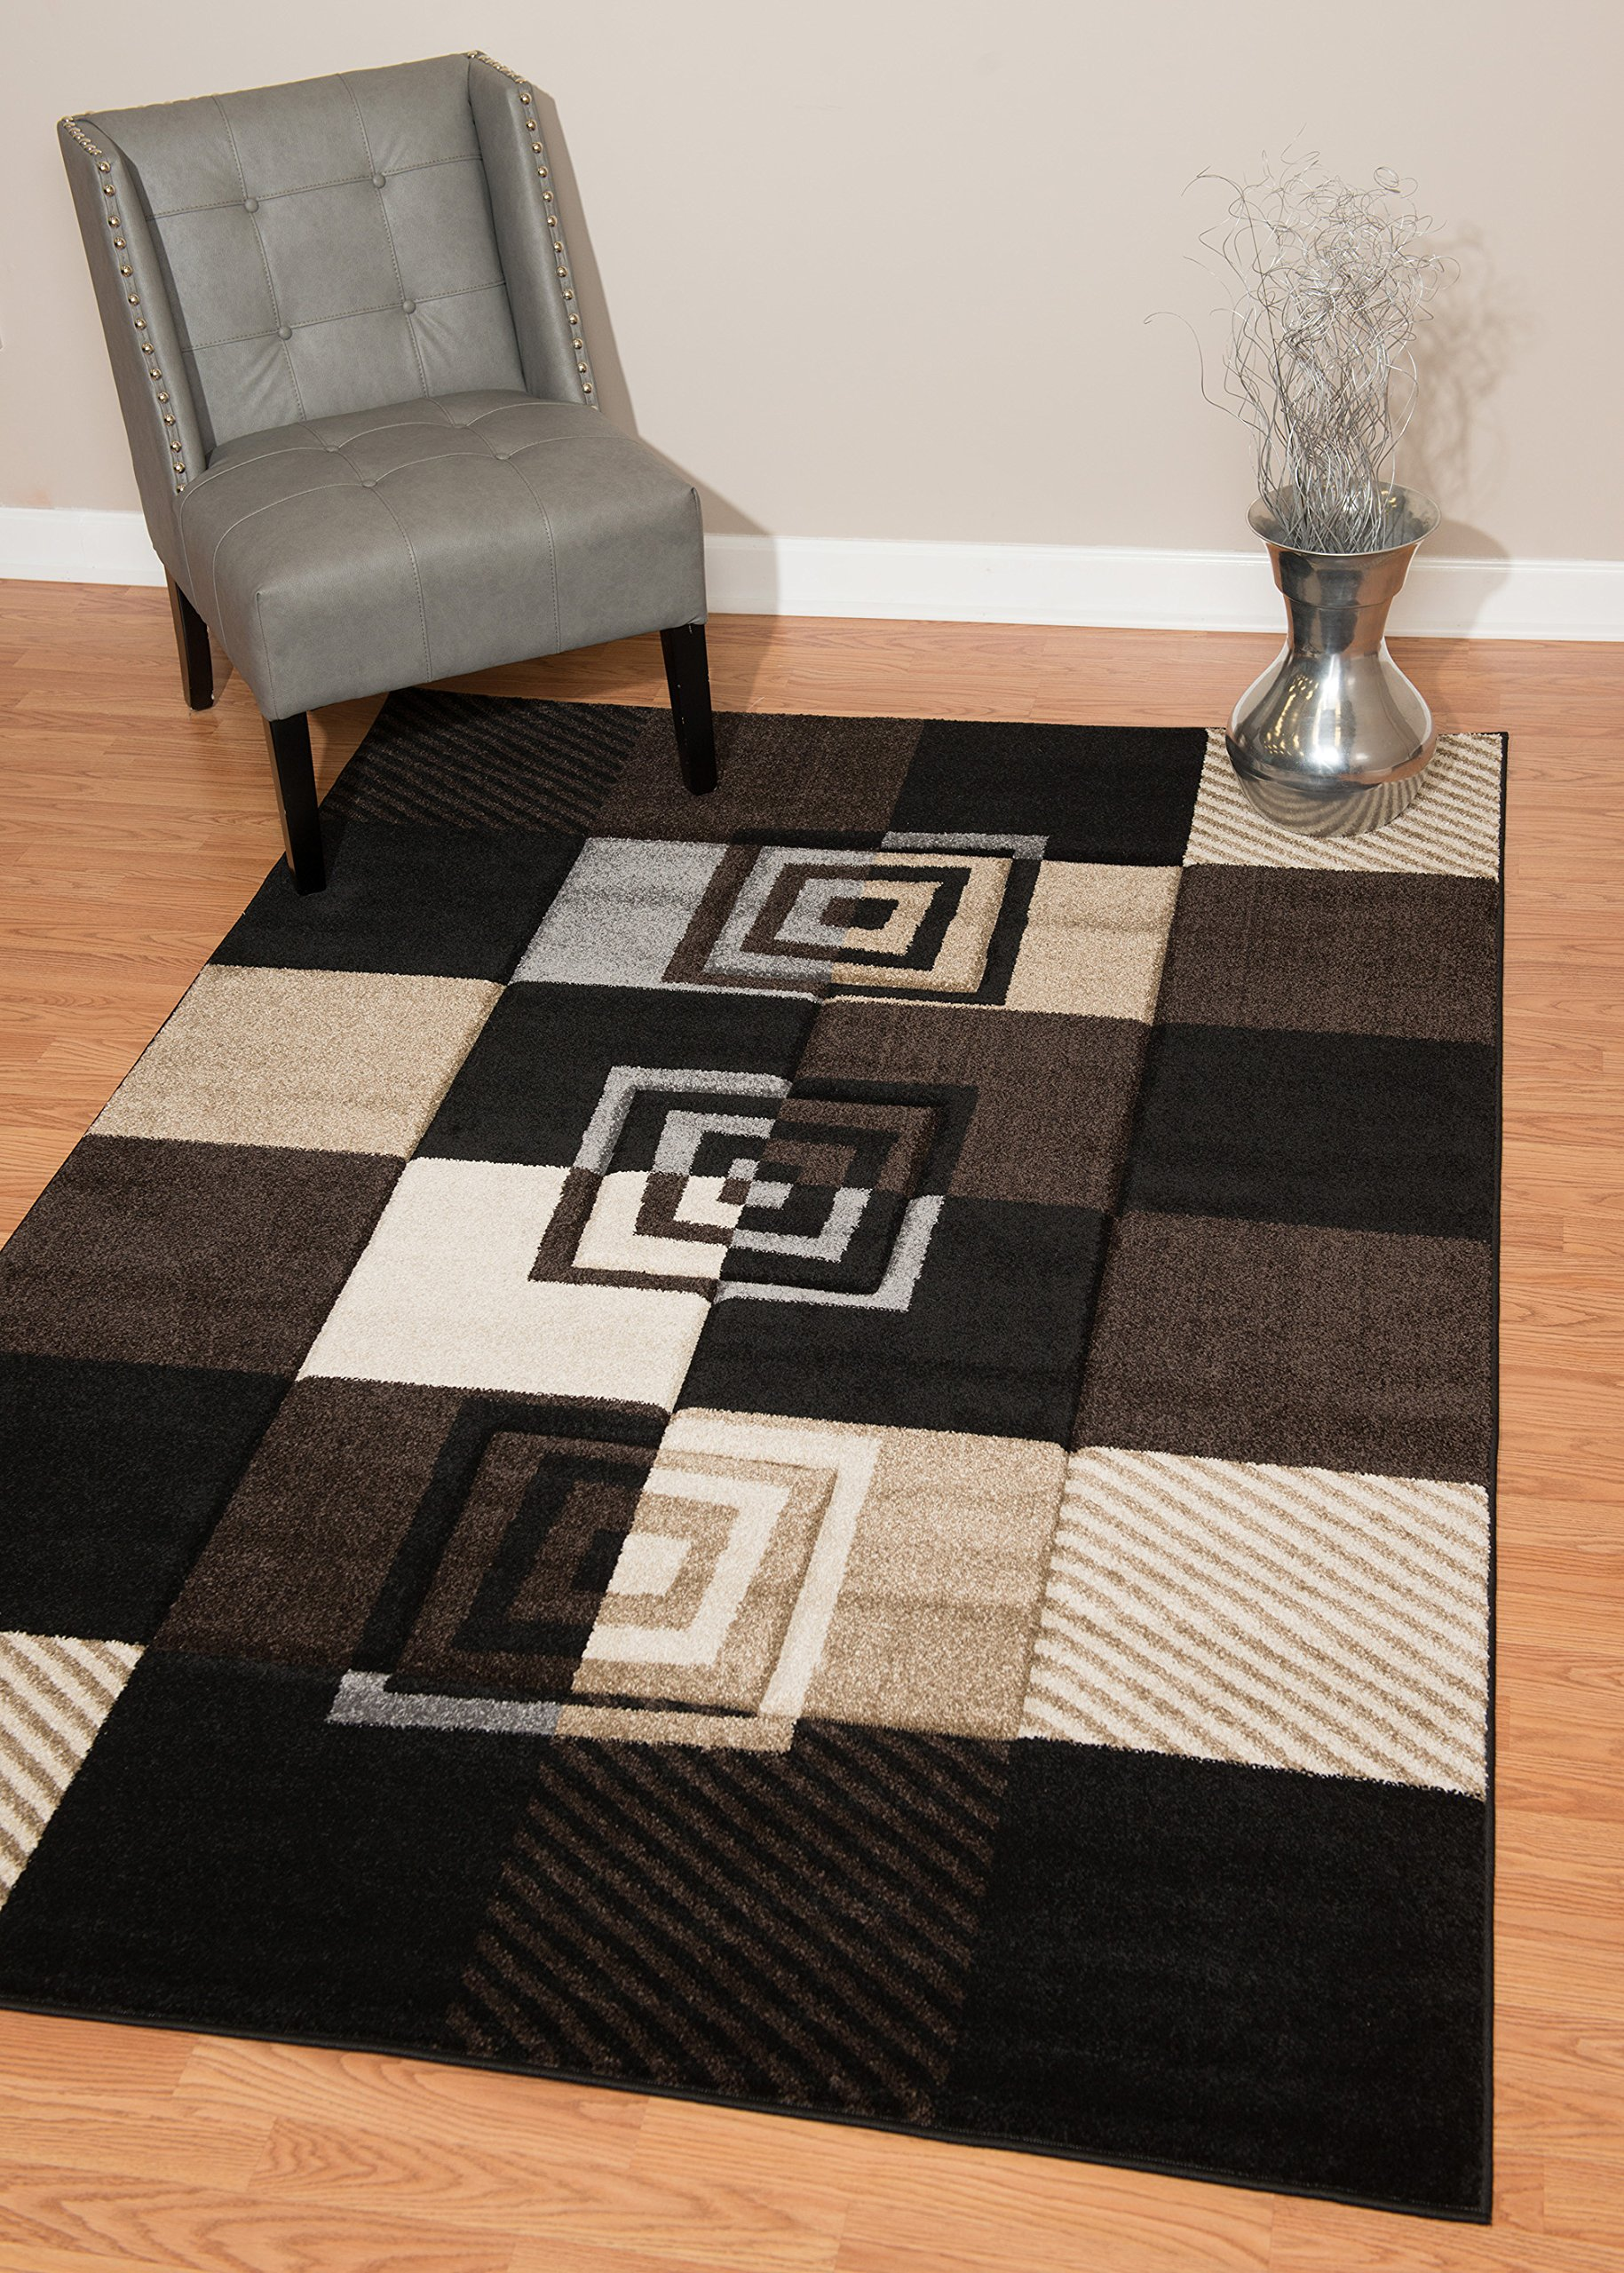 United Weavers of America Townshend Collection Vibes Modern Area Rug, 5-Feet 3-Inch by 7-Feet 6-Inch, Black